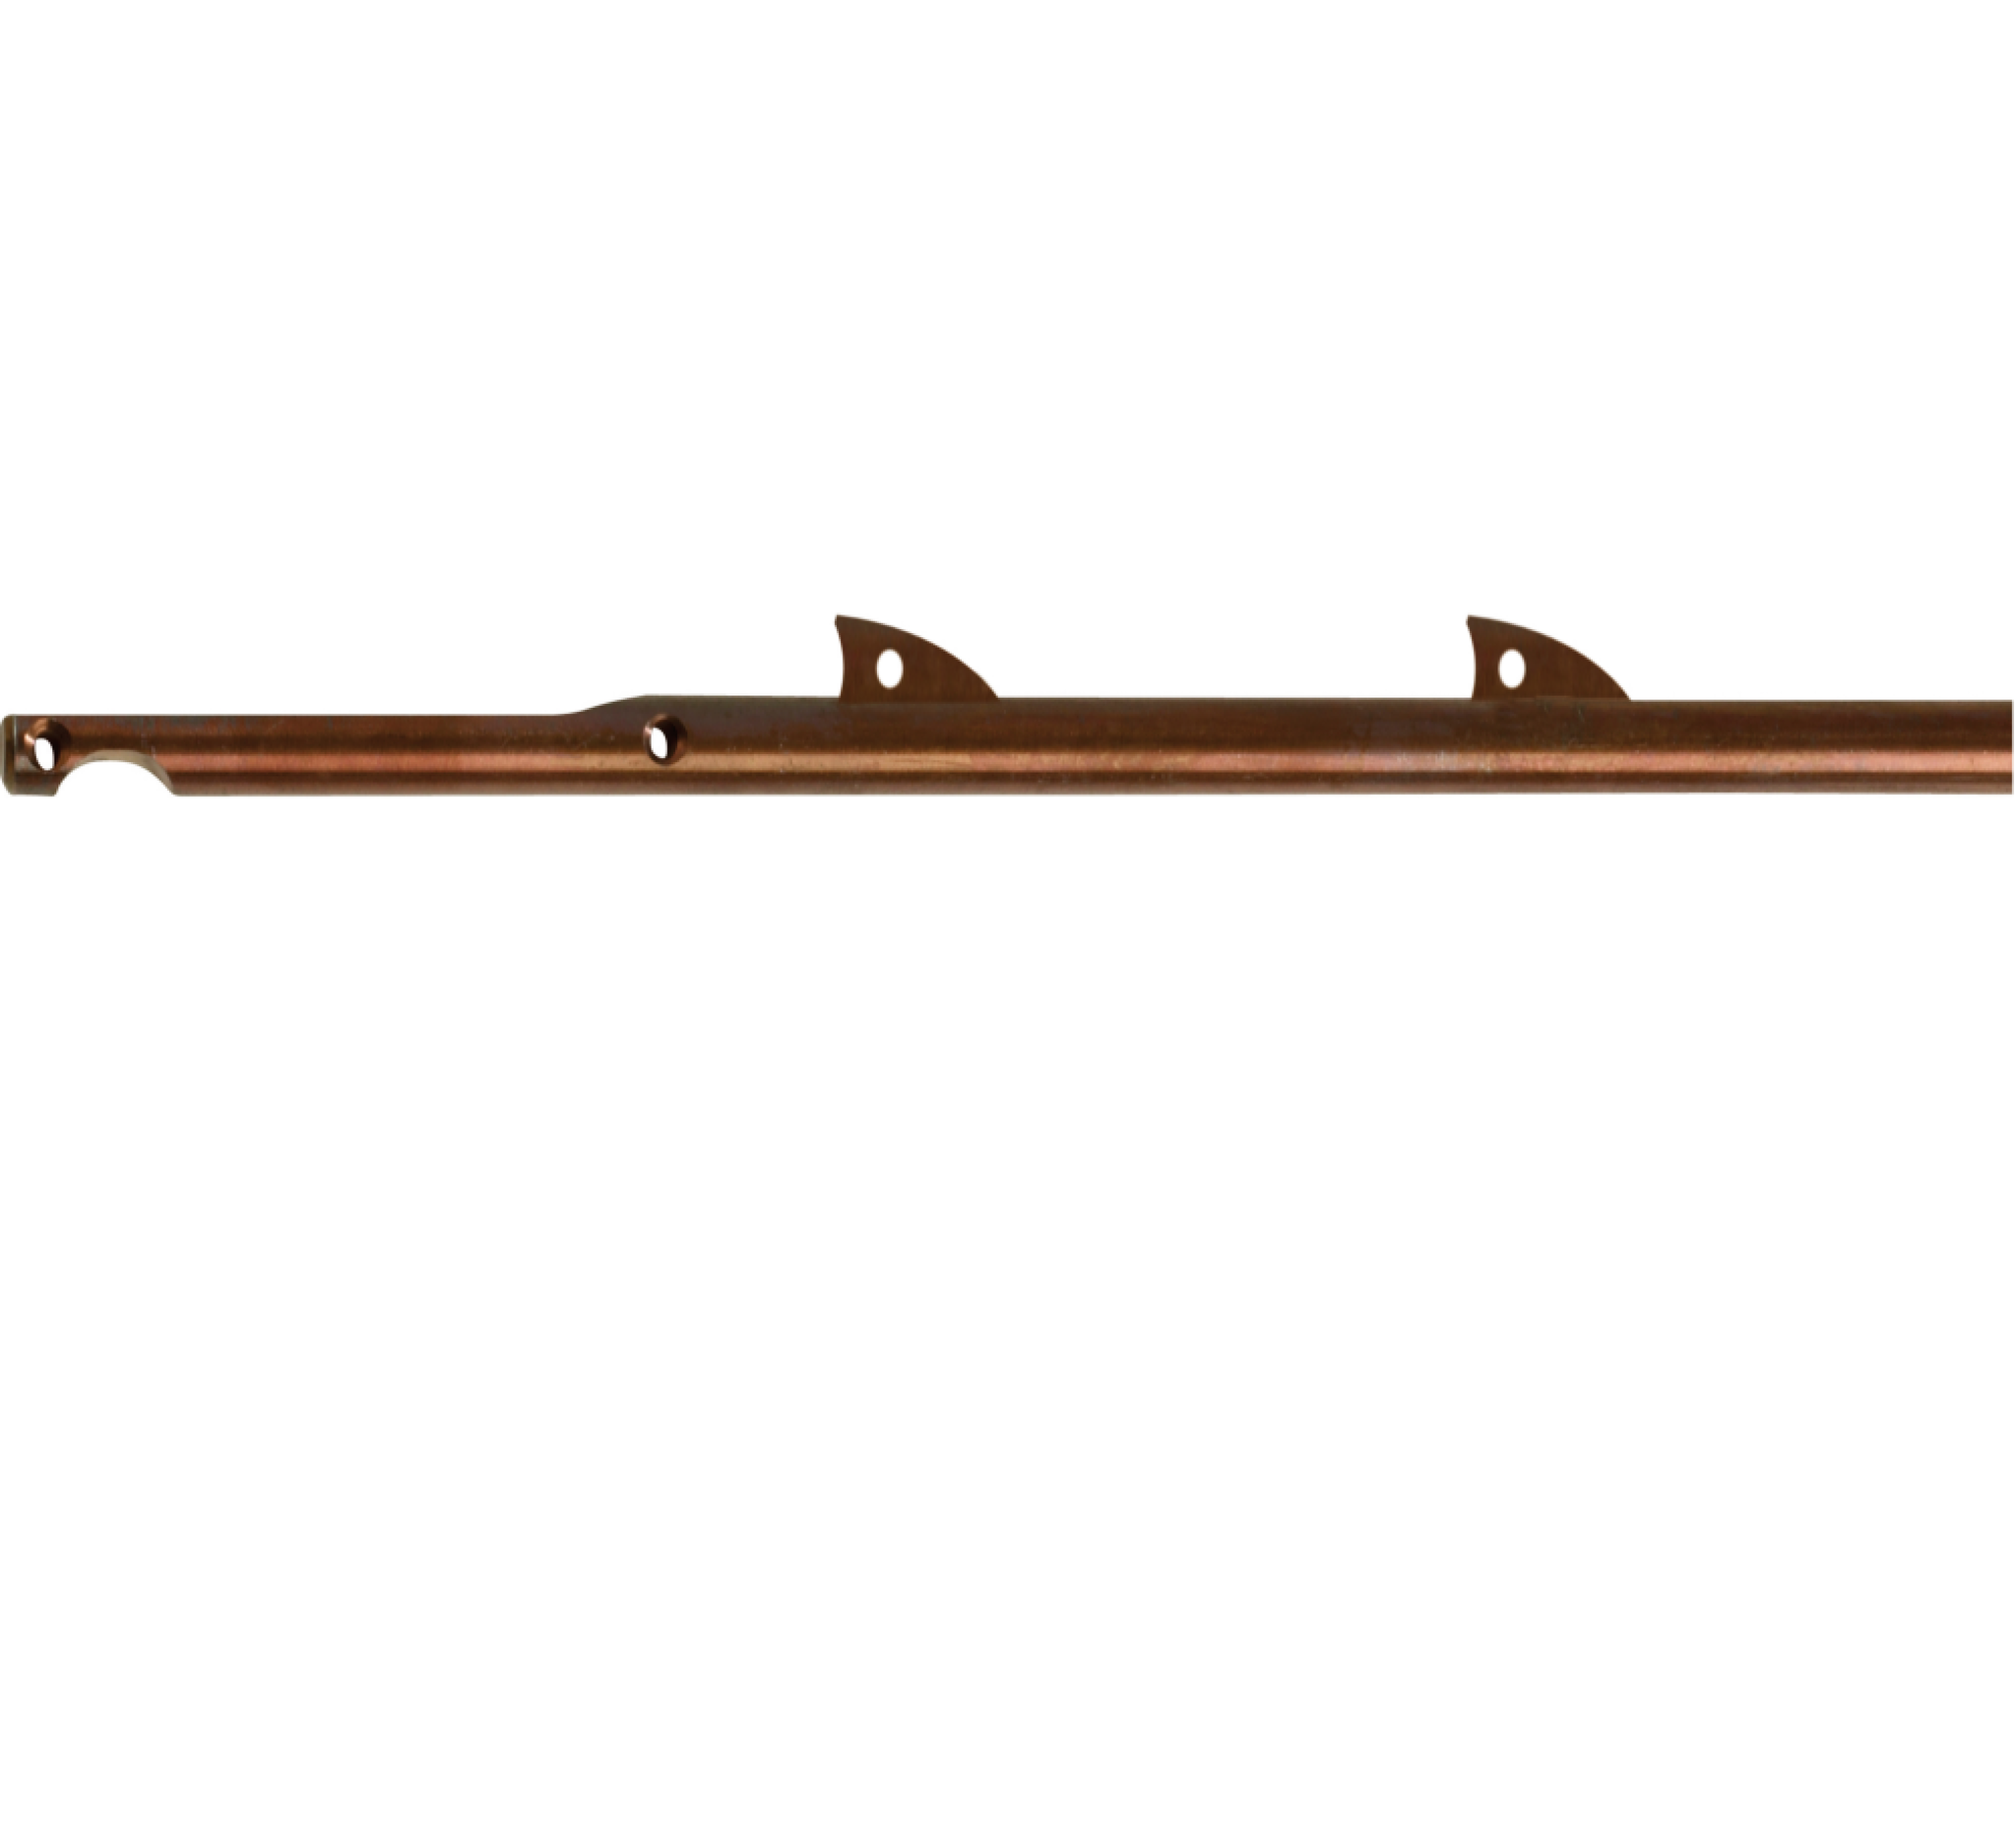 Inox Shaft with fins for Cressi Cherokee Open speargun